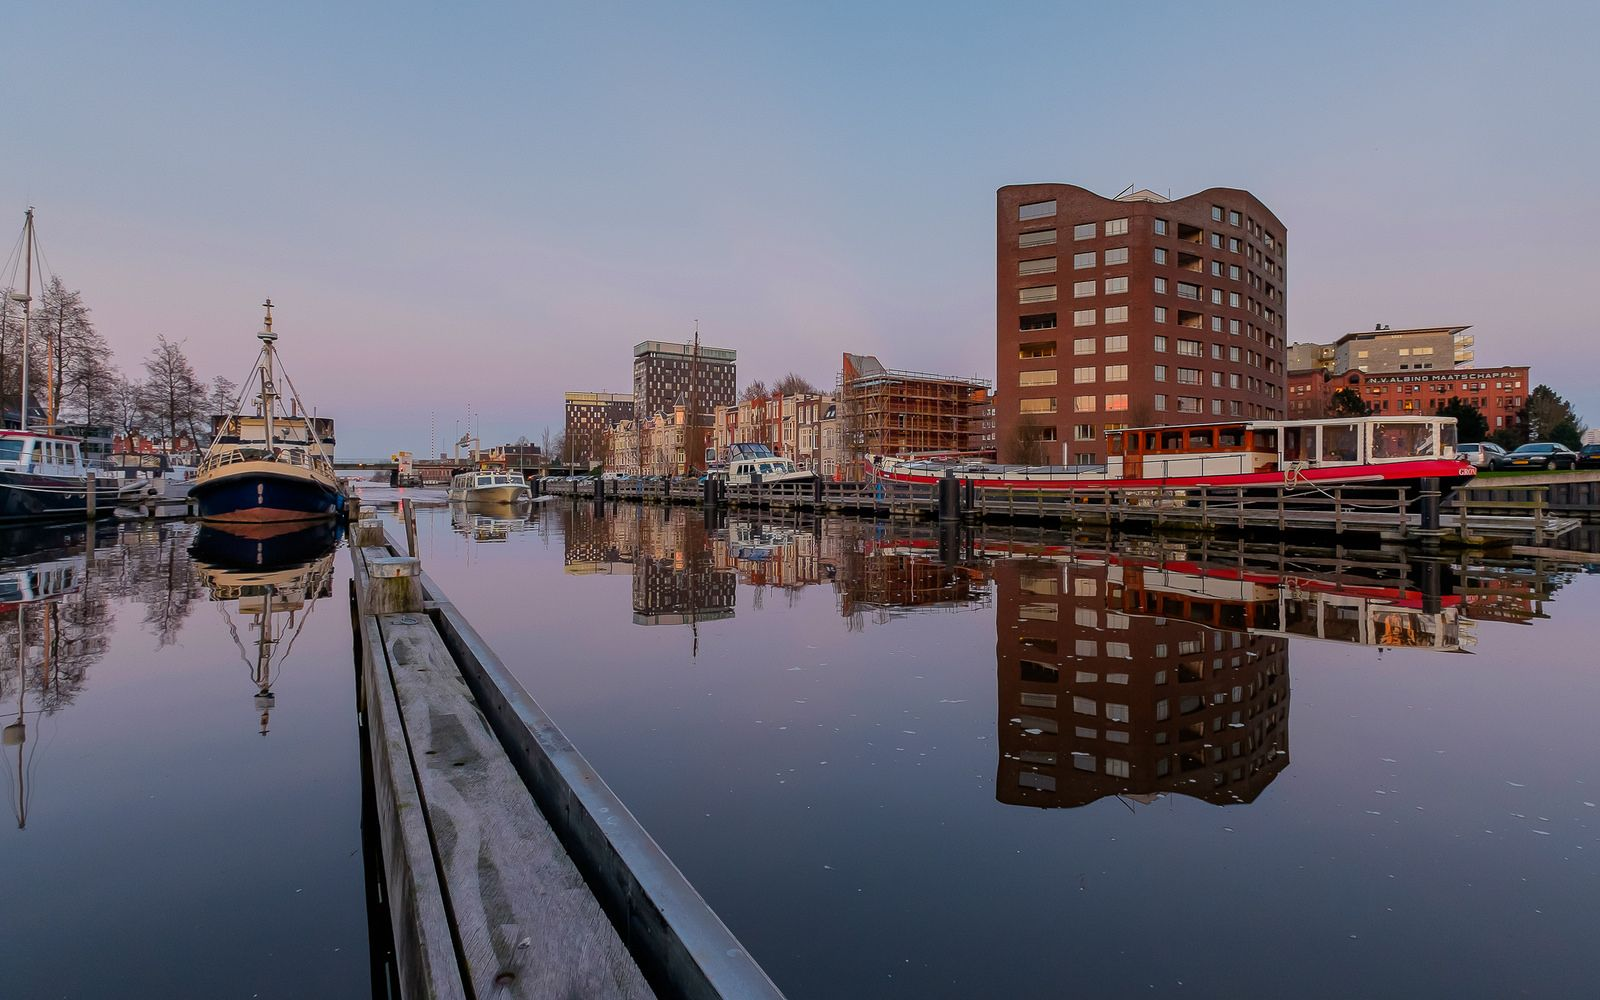 https://flic.kr/p/Fuy7Zm | Groningen Oosterhaven | Taken in Groningen, The Netherlands.  Fuji X-E2 + Fujinon 10-24mm at 10mm, f/5,6, 1/20 sec. exposure at ISO800.  Thanks to everyone who takes the time to comment and/or fave.  © Koos de Wit All rights reserved. Please don't use this image without my permission. www.koosdewit.nl